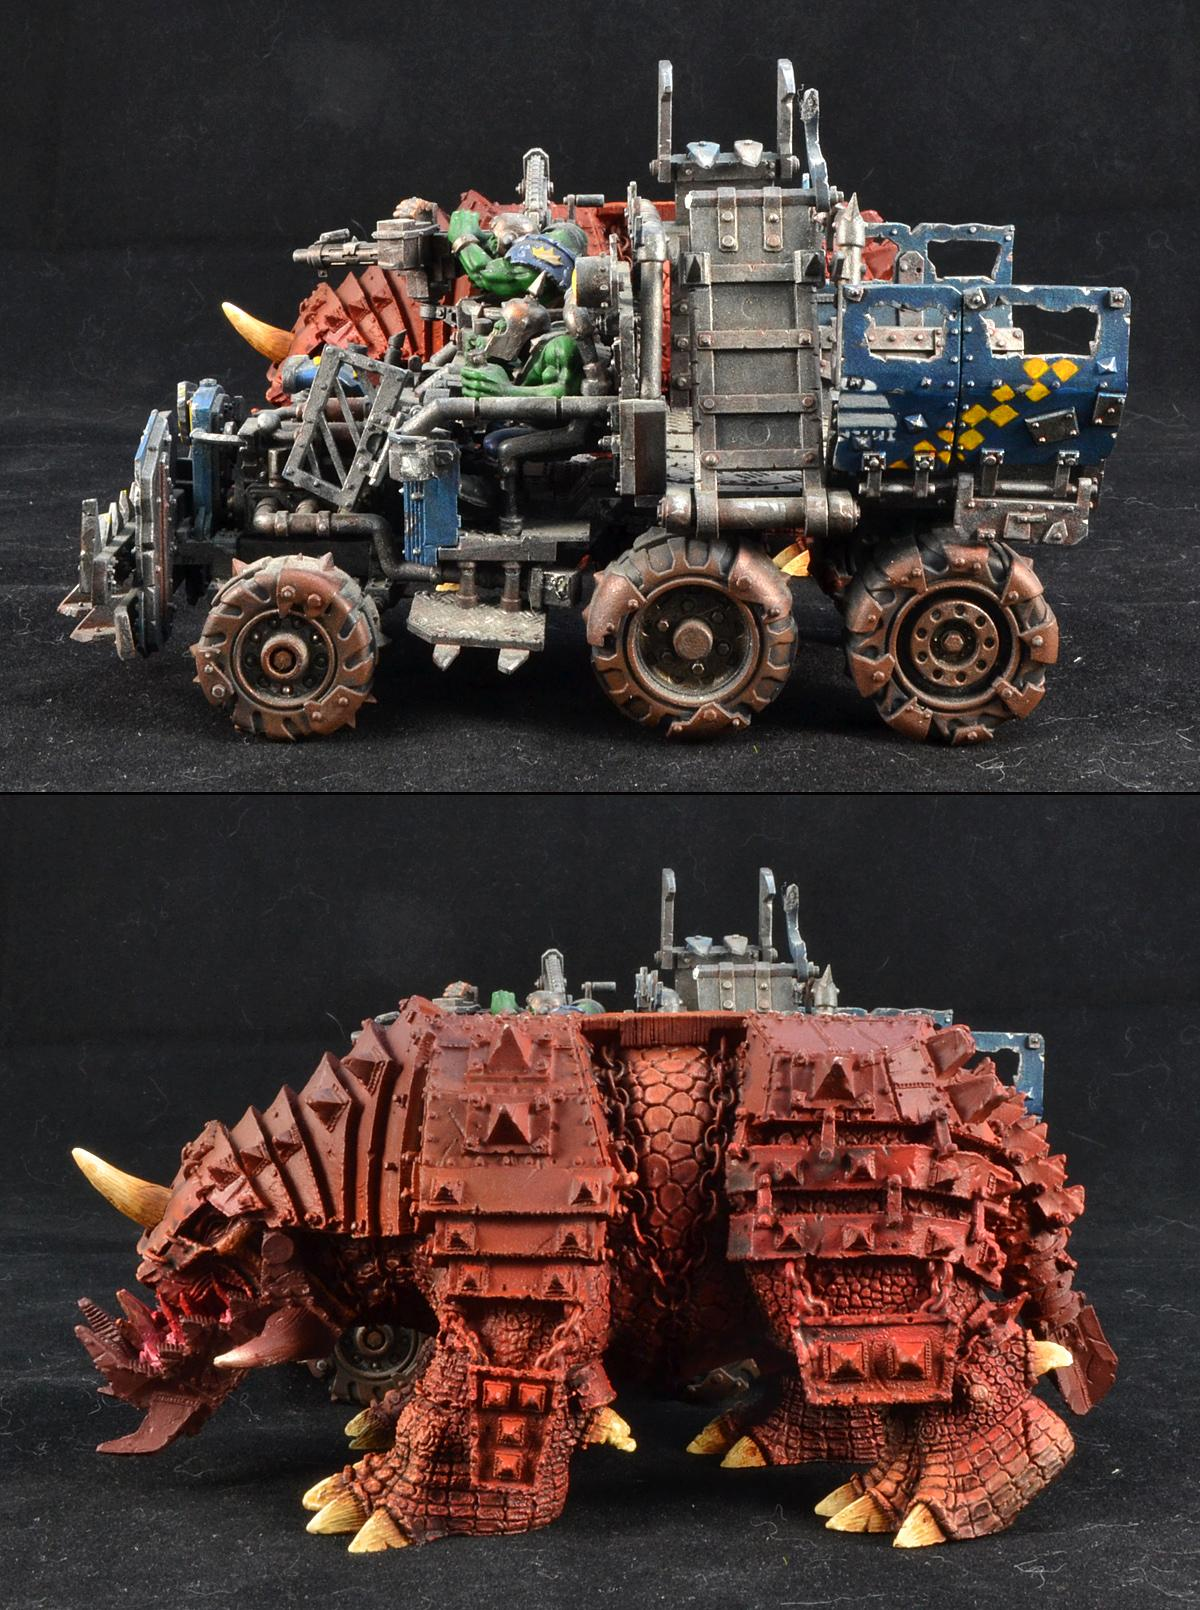 Big Squiggoth, Orks, Size Comparison, Squiggoth, Warhammer 40,000